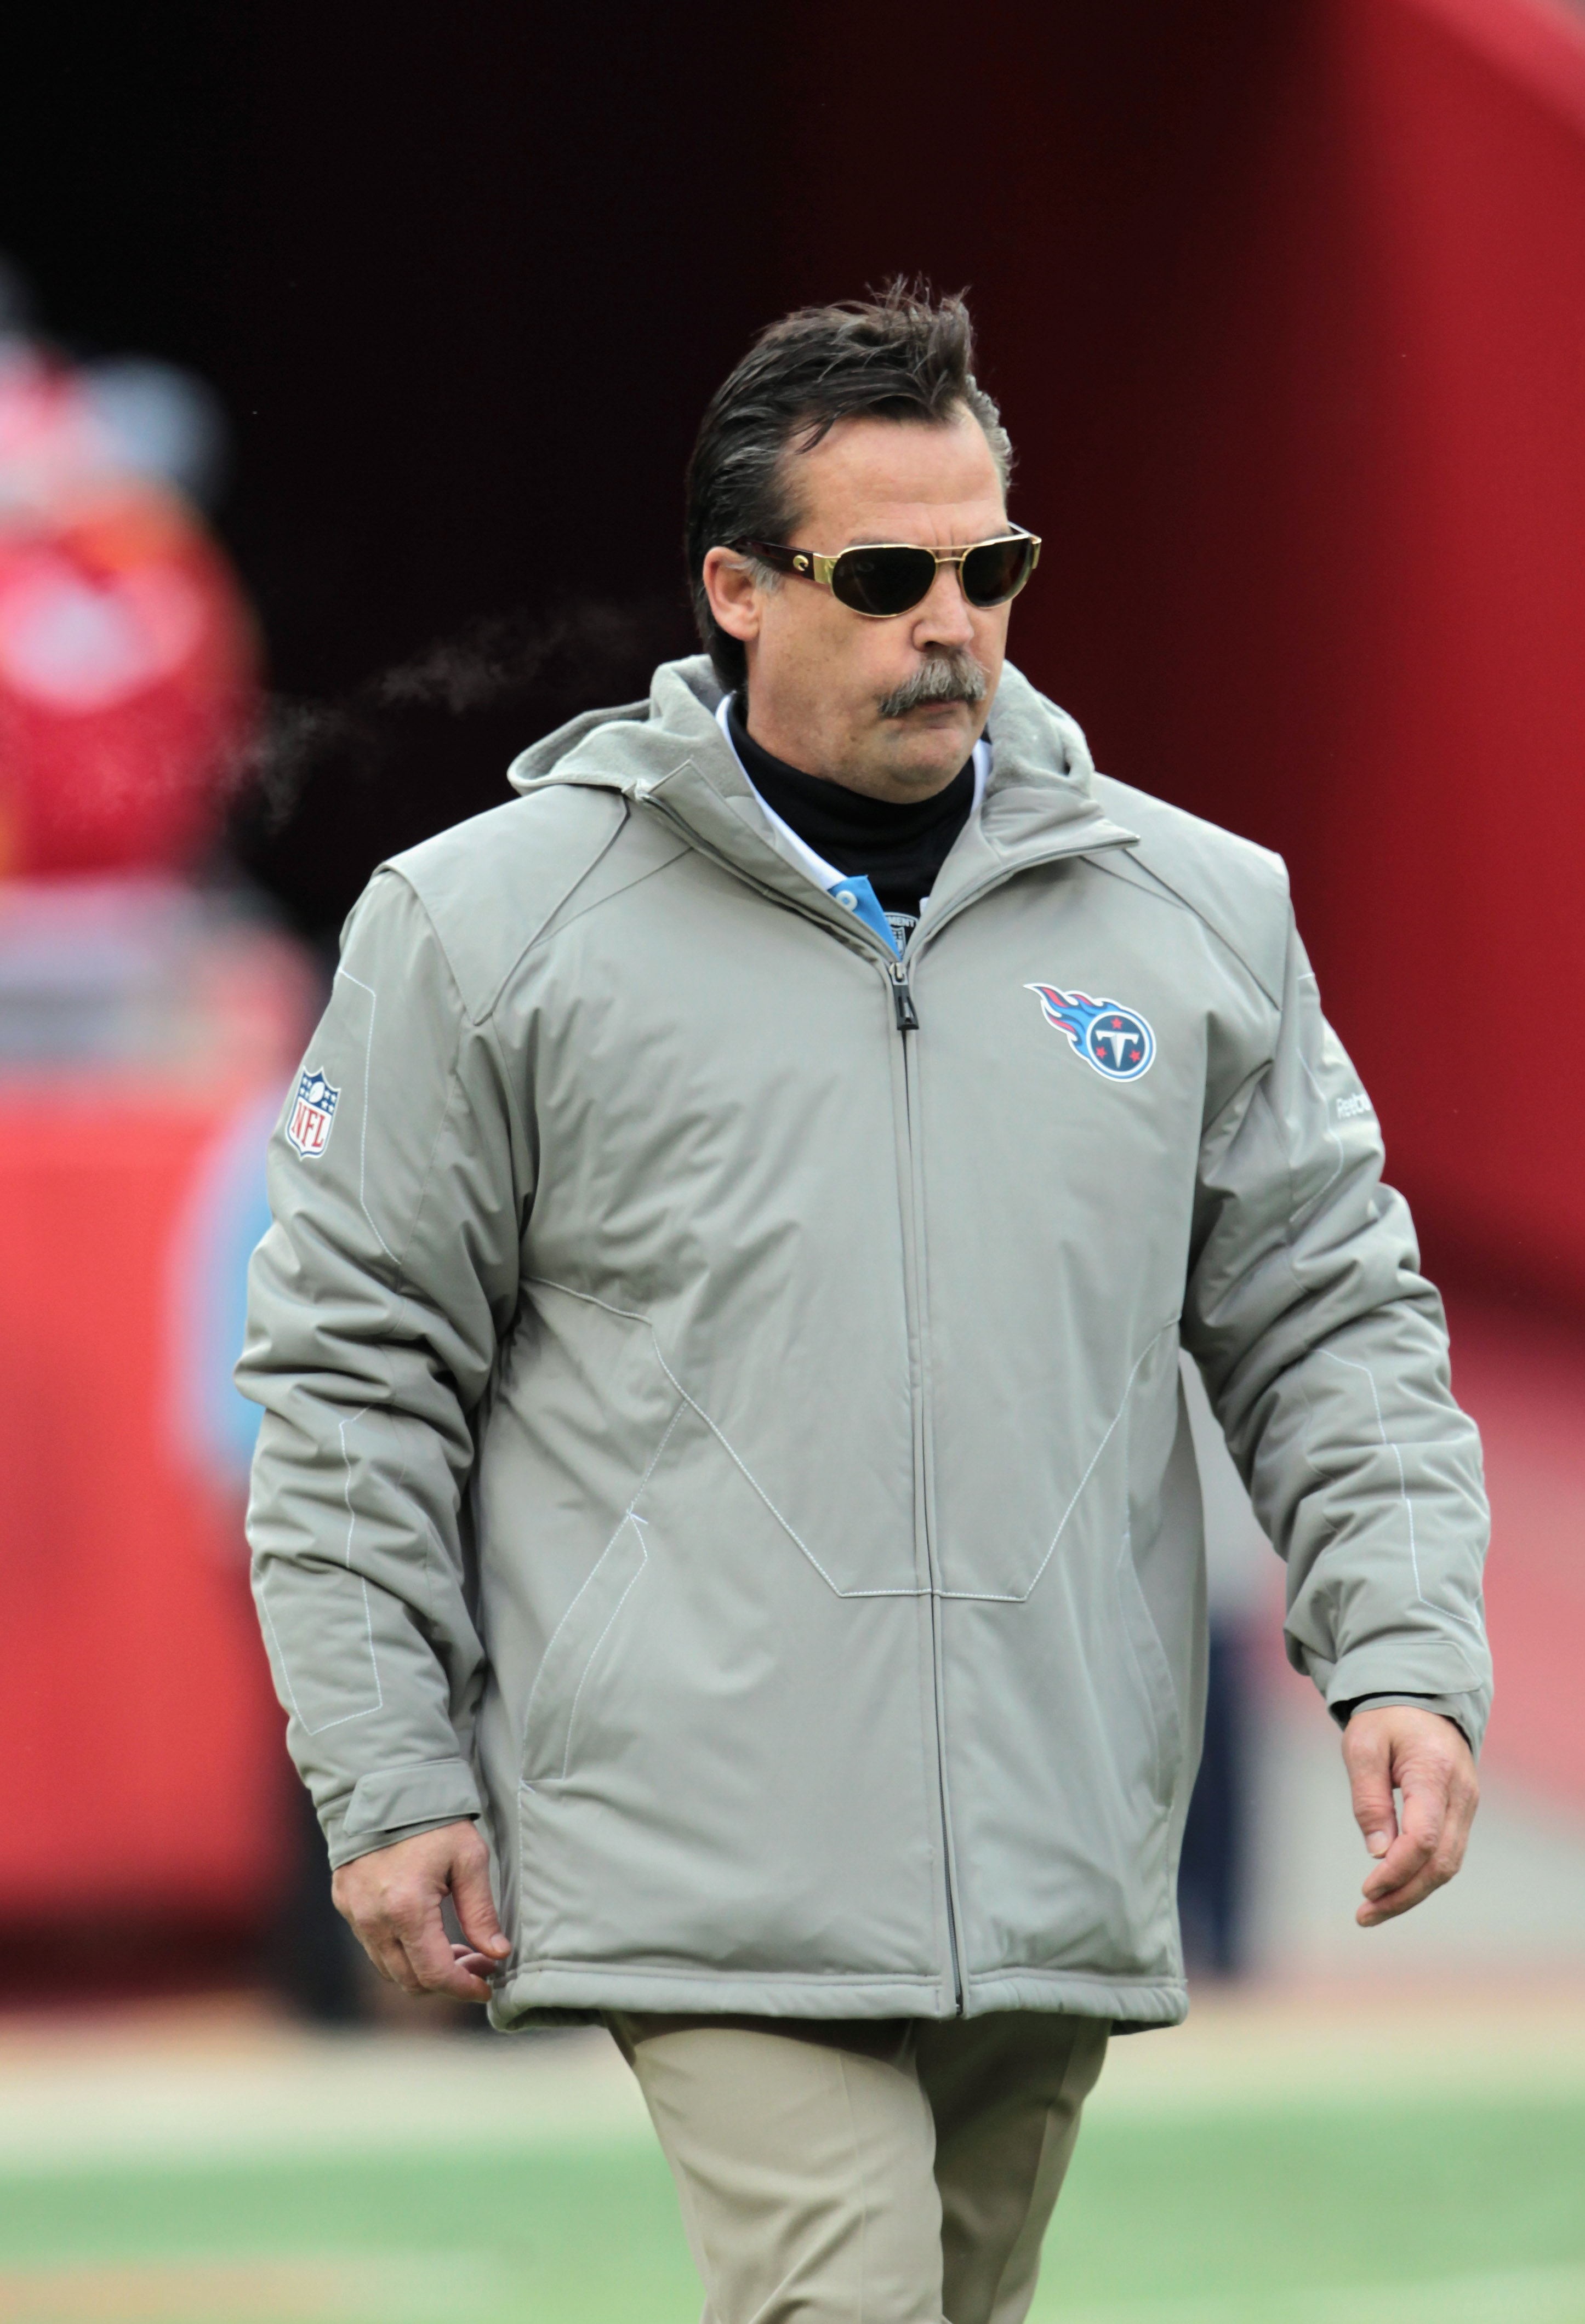 KANSAS CITY, MO - DECEMBER 26:  Head coach Jeff Fisher of the Tennessee Titans walks onto the field prior to the start of the game against the Kansas City Chiefs on December 26, 2010 at Arrowhead Stadium in Kansas City, Missouri.  (Photo by Jamie Squire/G